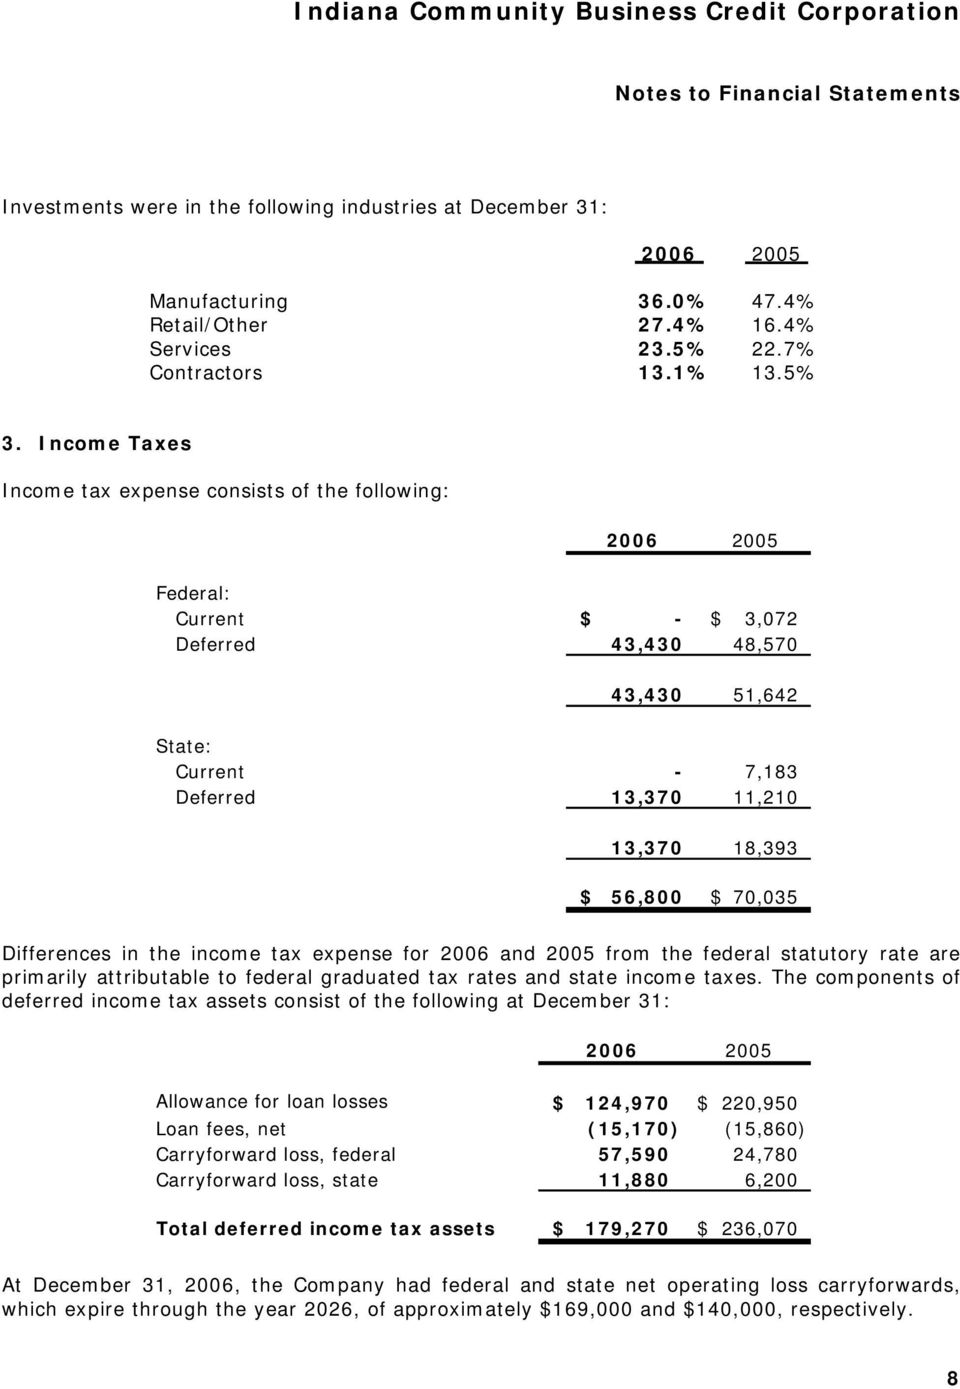 70,035 Differences in the income tax expense for 2006 and 2005 from the federal statutory rate are primarily attributable to federal graduated tax rates and state income taxes.